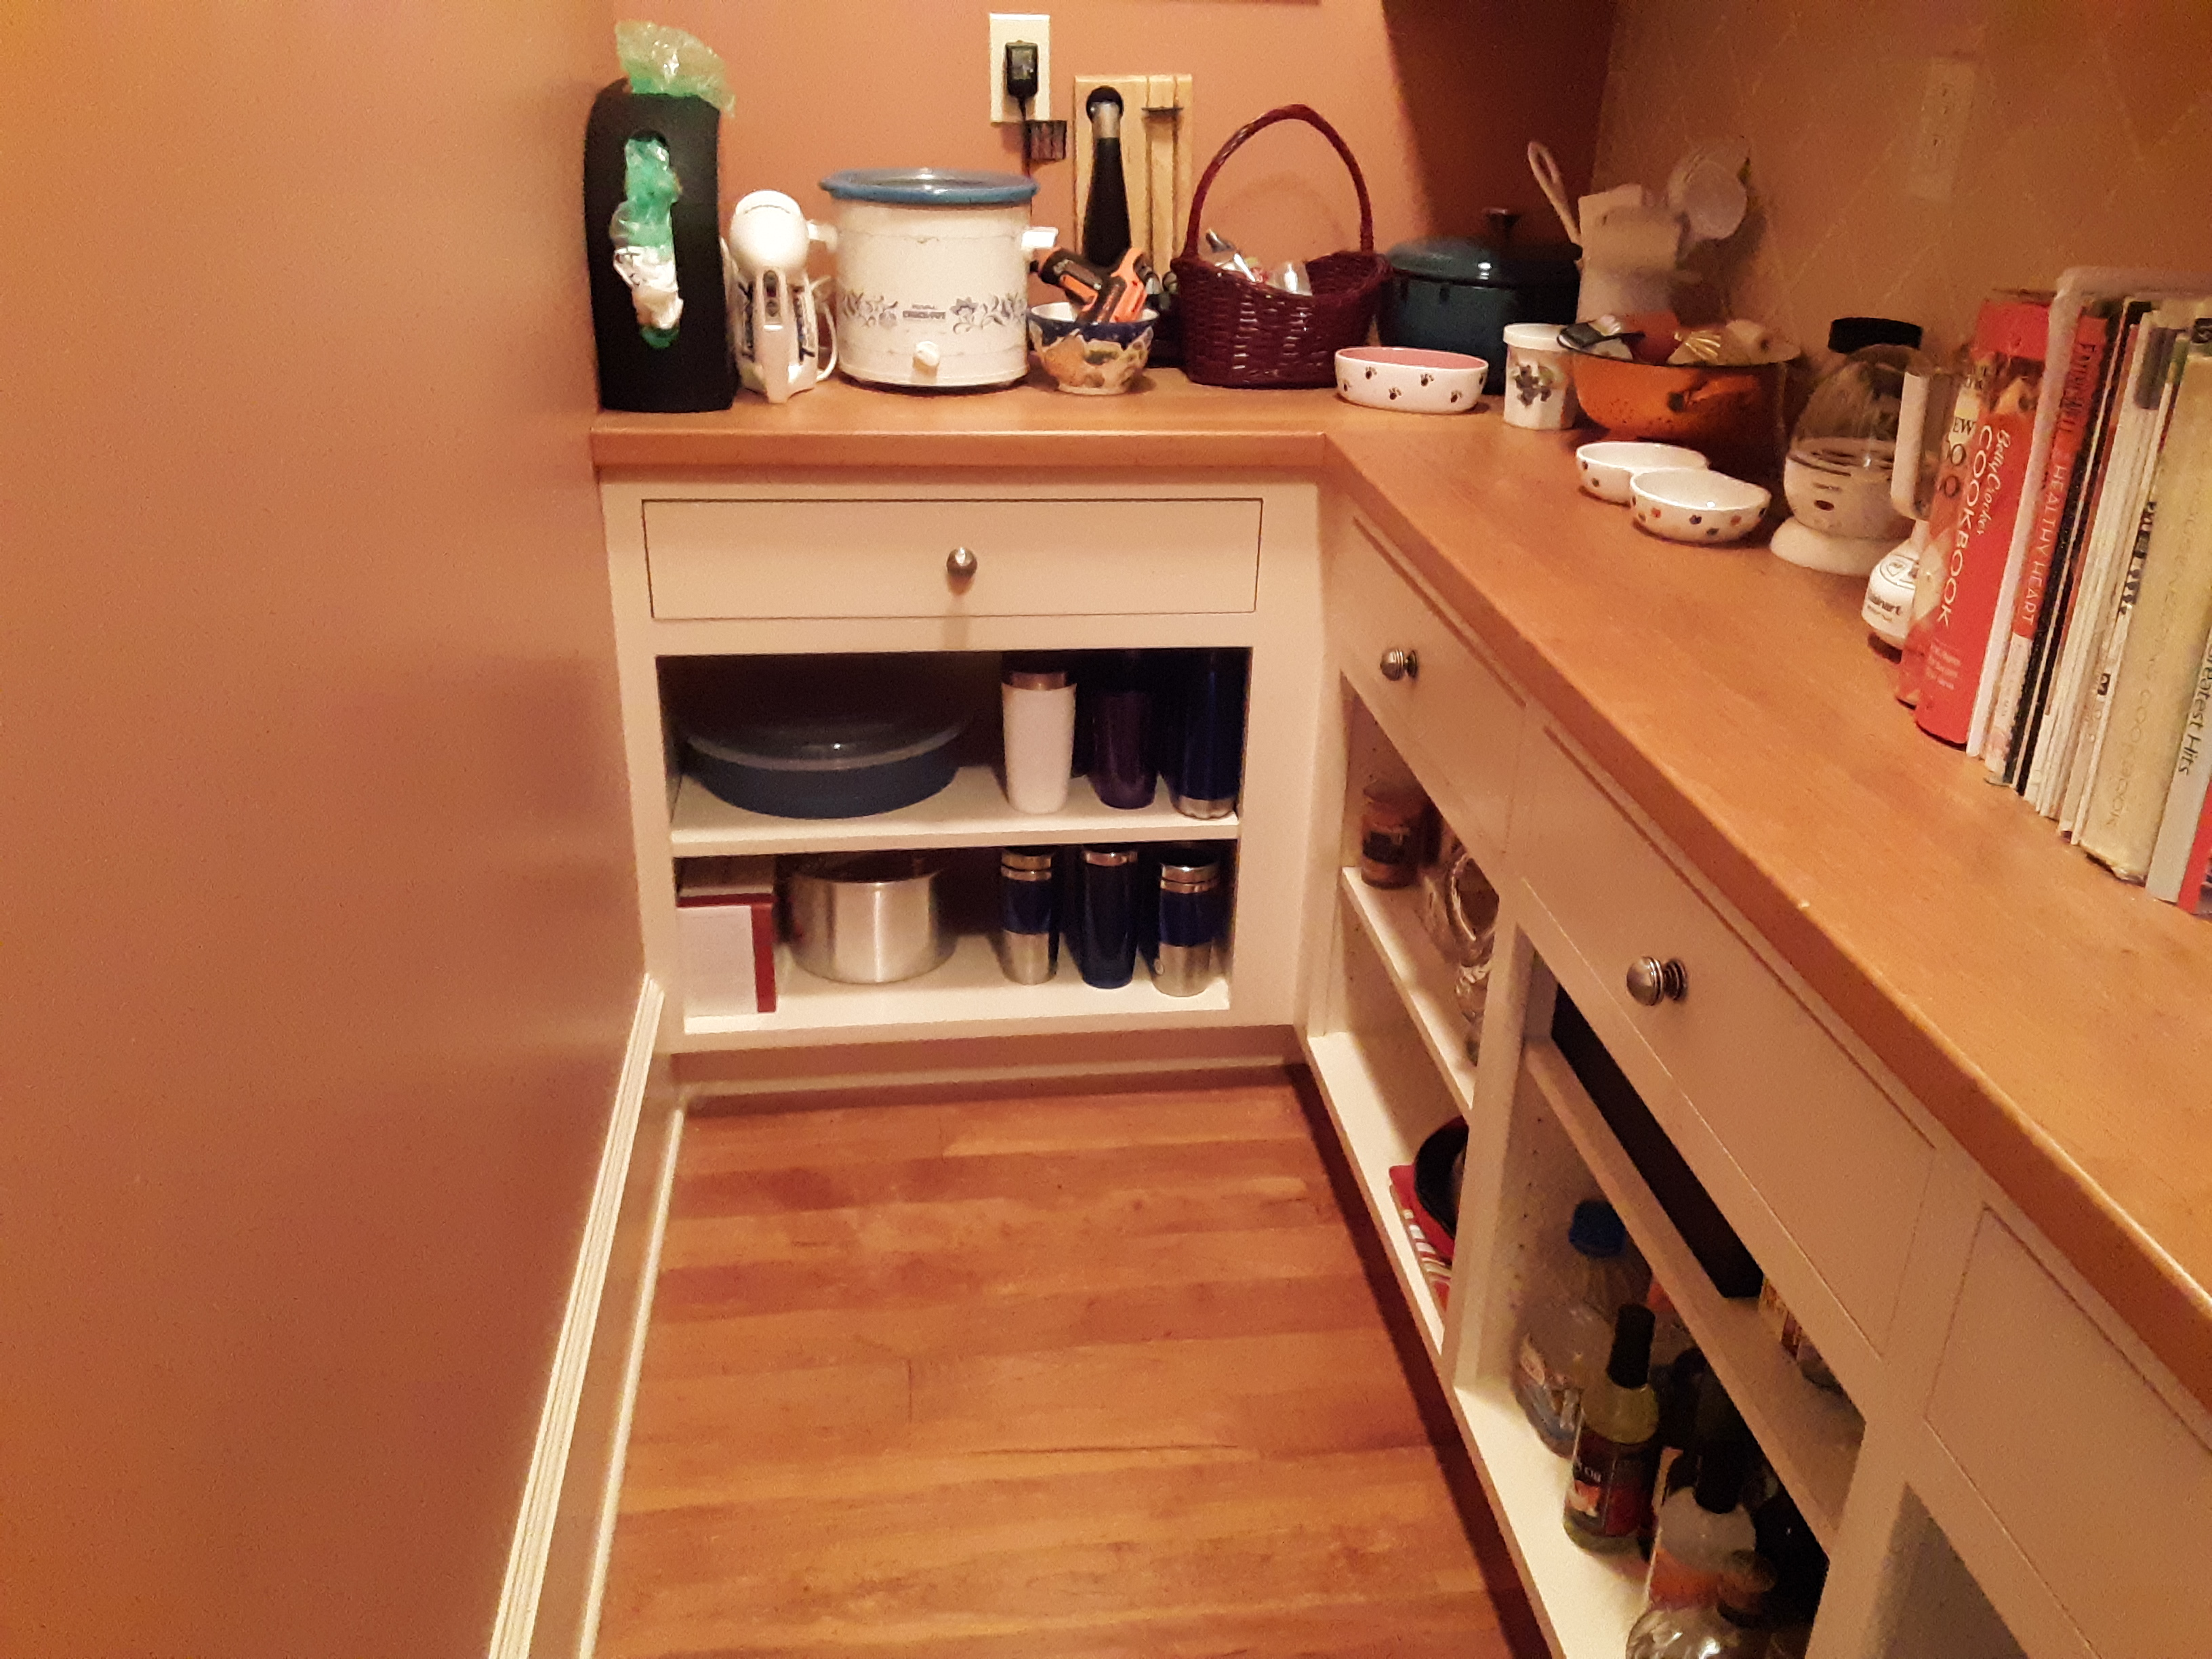 Clutter-free pantry floor and counter